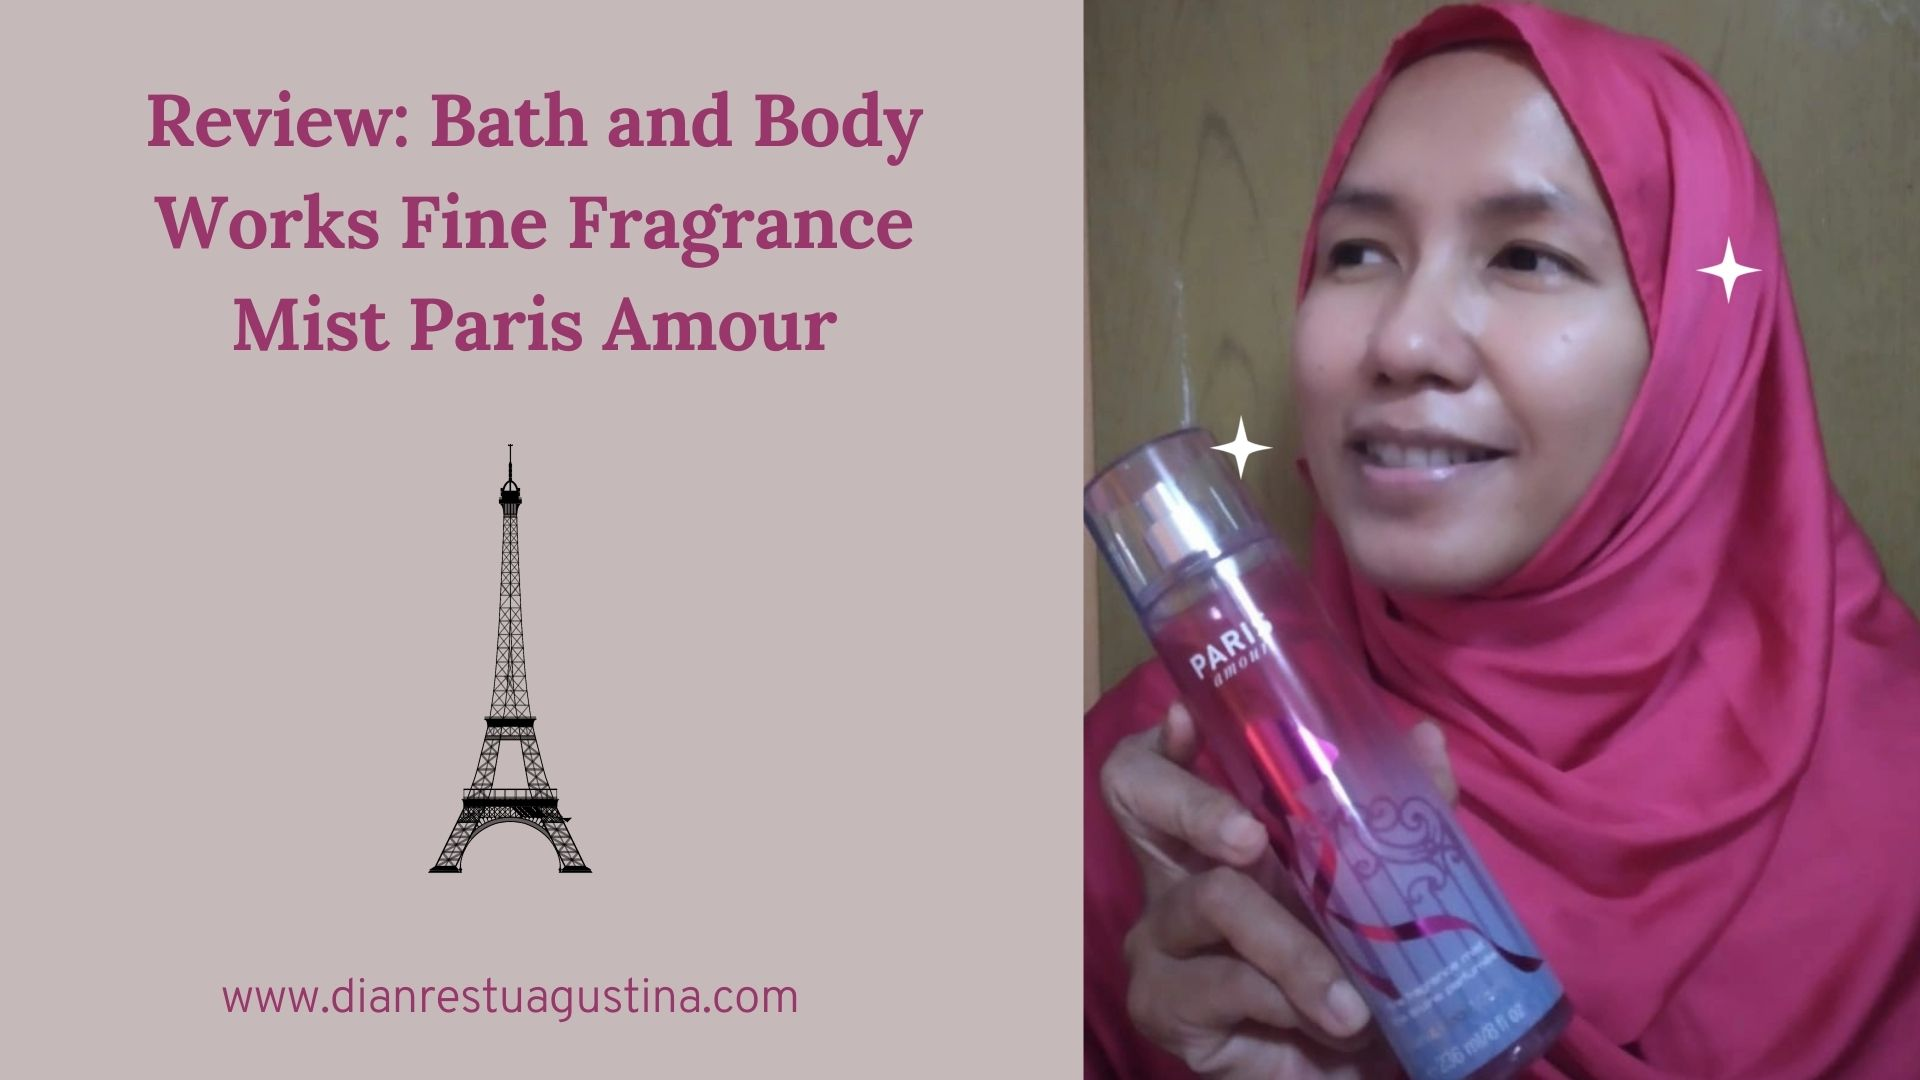 Review Bath and Body Works